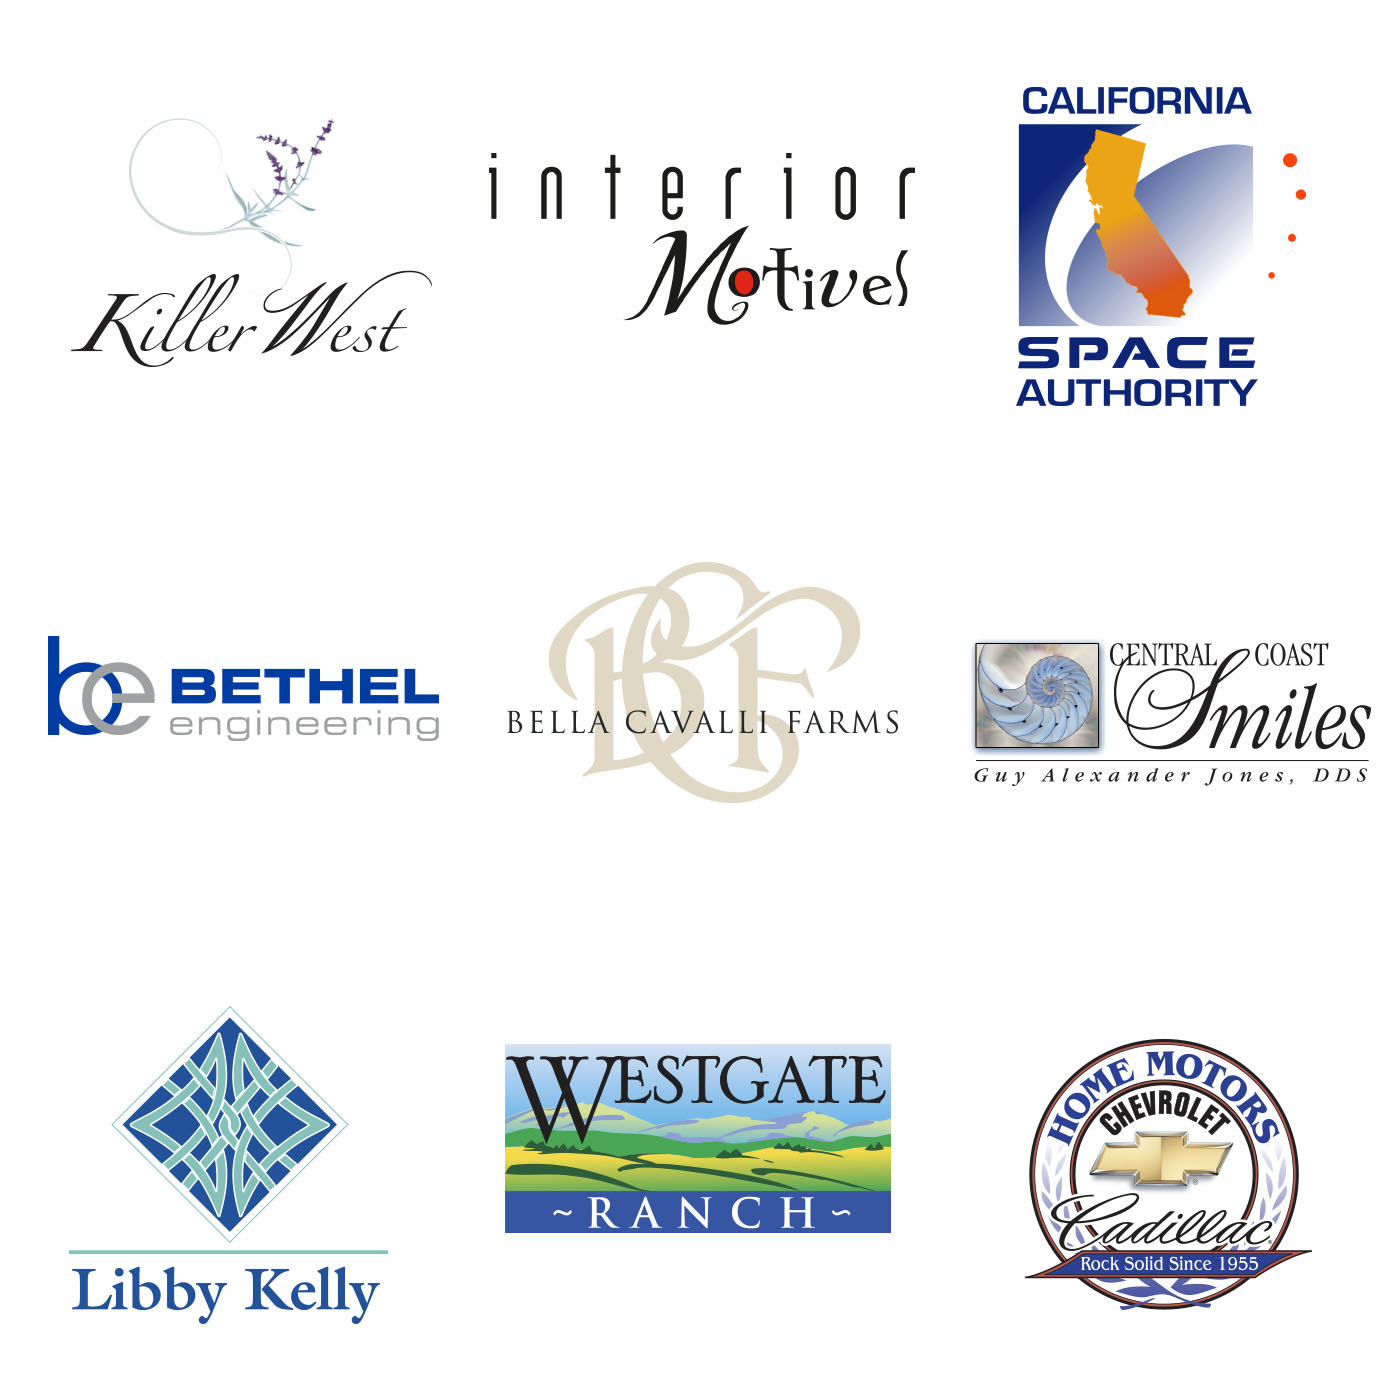 nding & Logo Design   Nancy Jo Ward on country home designers, ranch interior design, lake home designers, craftsman home designers, ranch house plans, ranch floor plans, ranch painting, mediterranean home designers, ranch tools, ranch signs, ranch log homes, modern home designers, custom home designers, french home designers, ranch doors, ranch fences, ranch decks, log home designers, ranch blueprints, residential home designers,